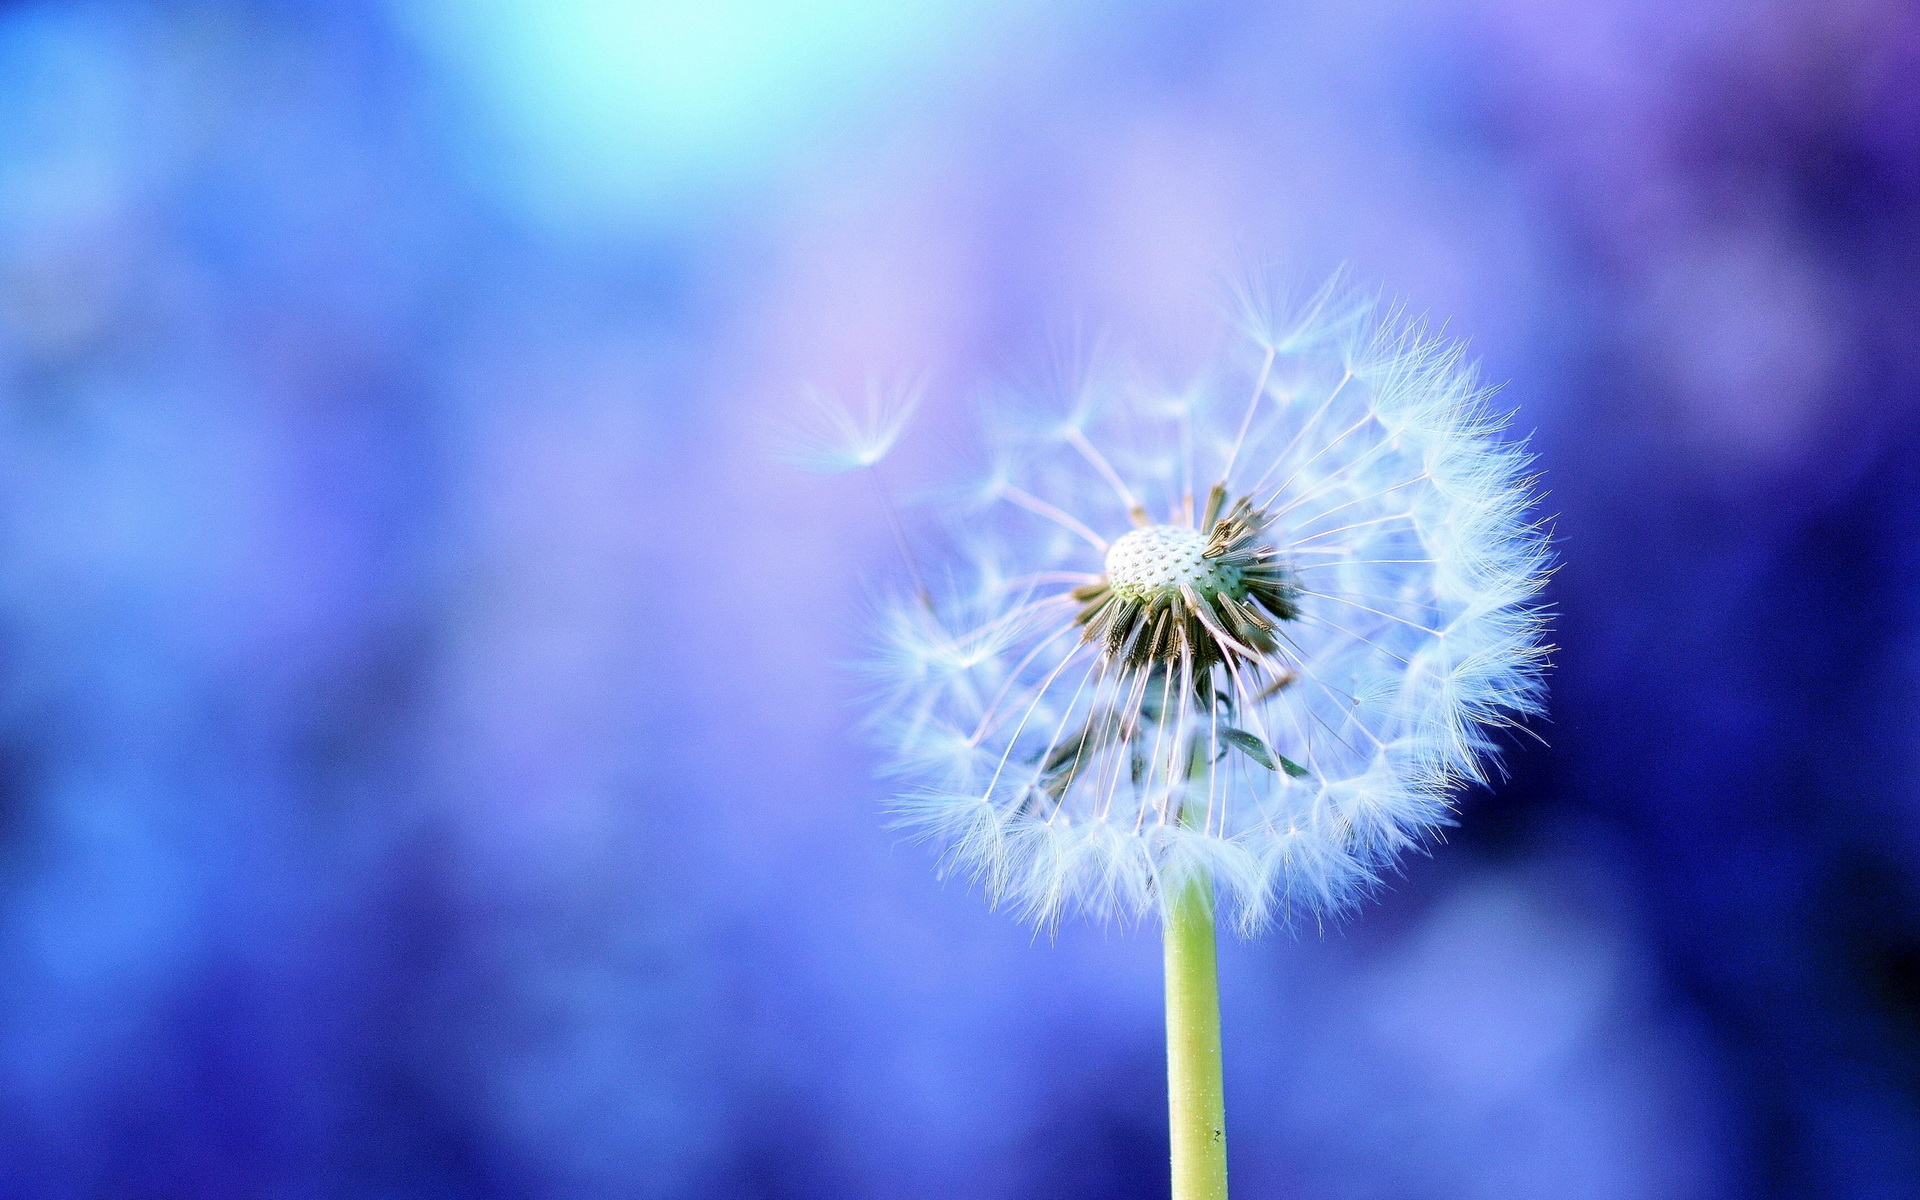 Dandelion wallpapers and images 1920x1200